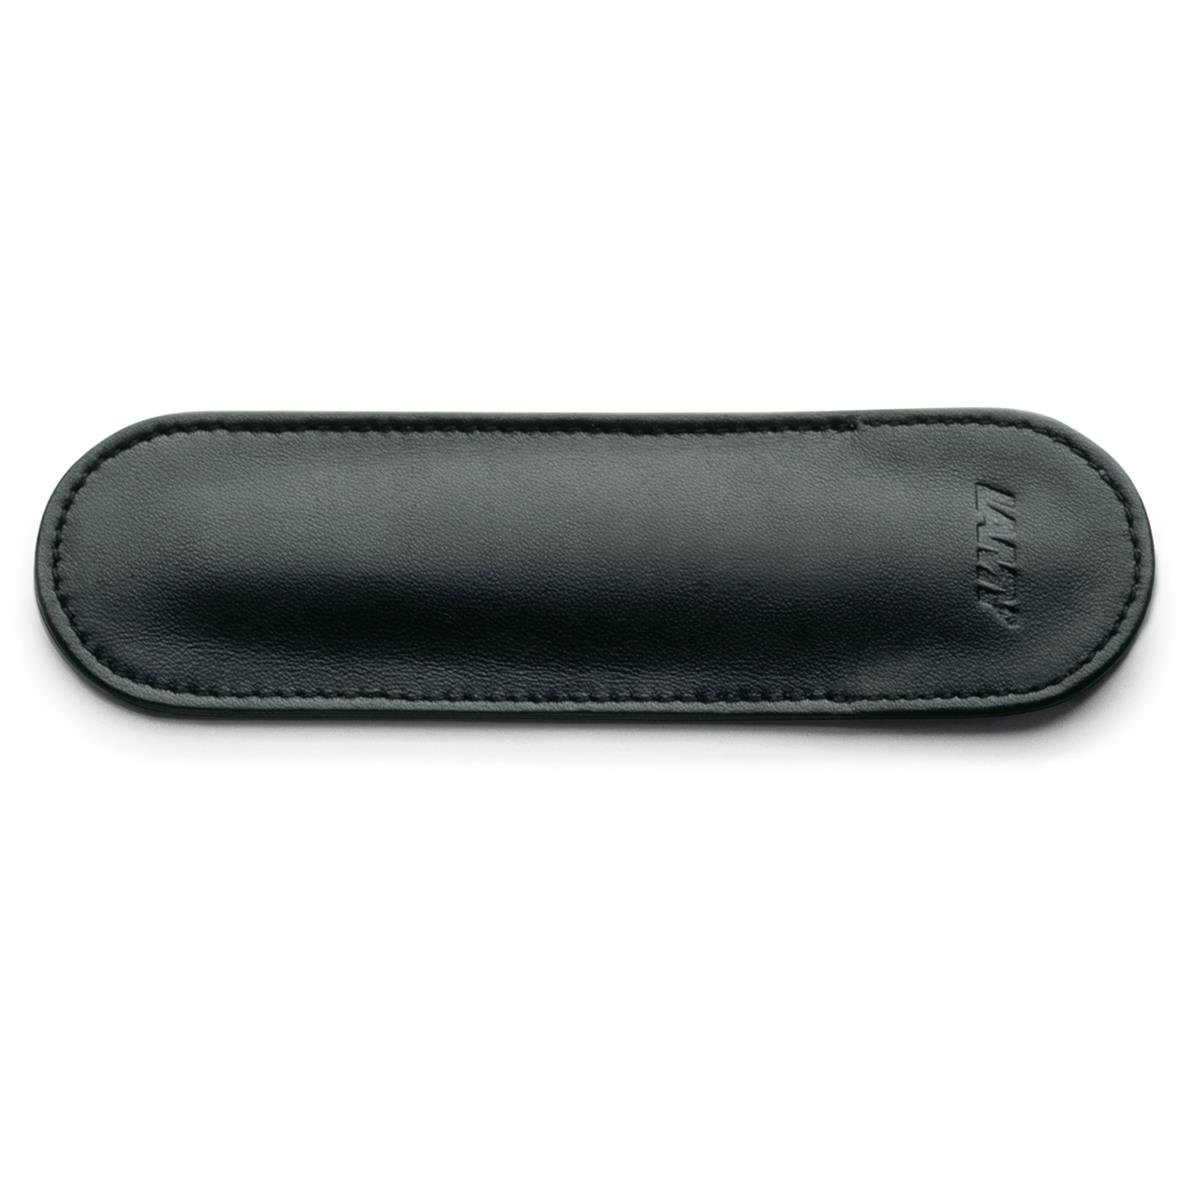 LAMY A 111 Leather Case for Single Writing Instrument A 111 LAMY leather case